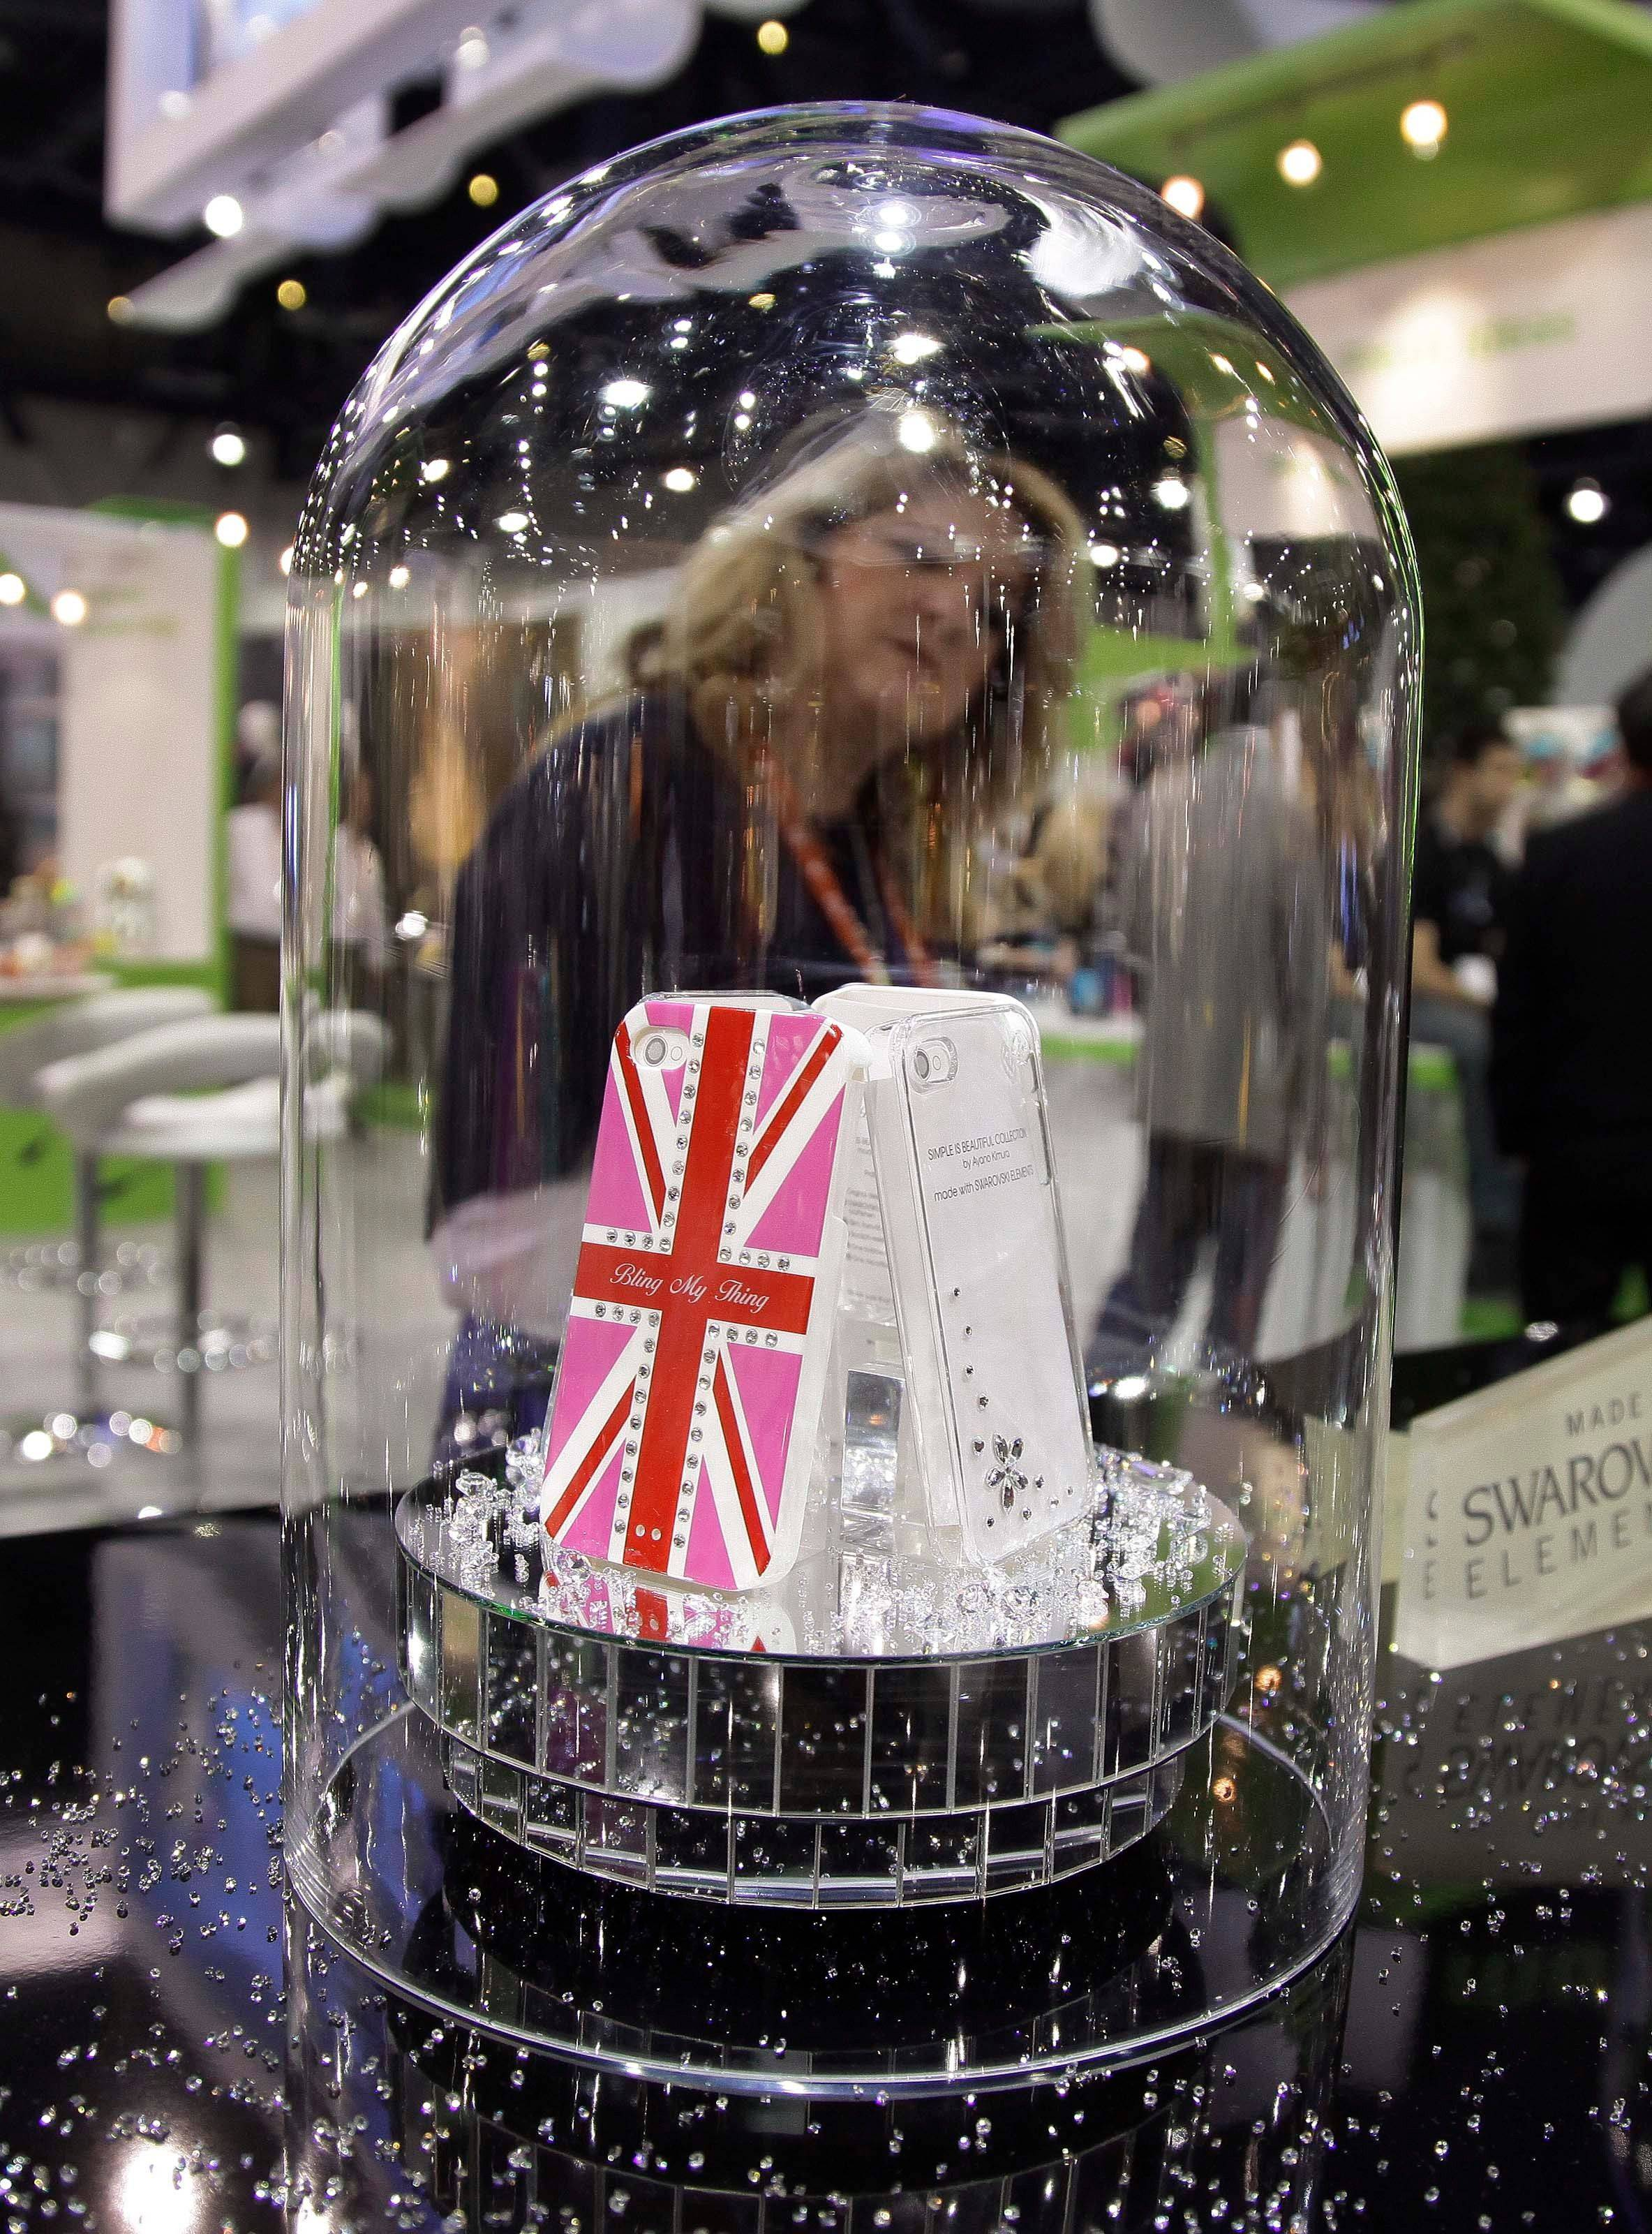 An exhibitor looks over cellphone covers featuring Swarovski crystal trim at the 2012 International Consumer Electronics show.